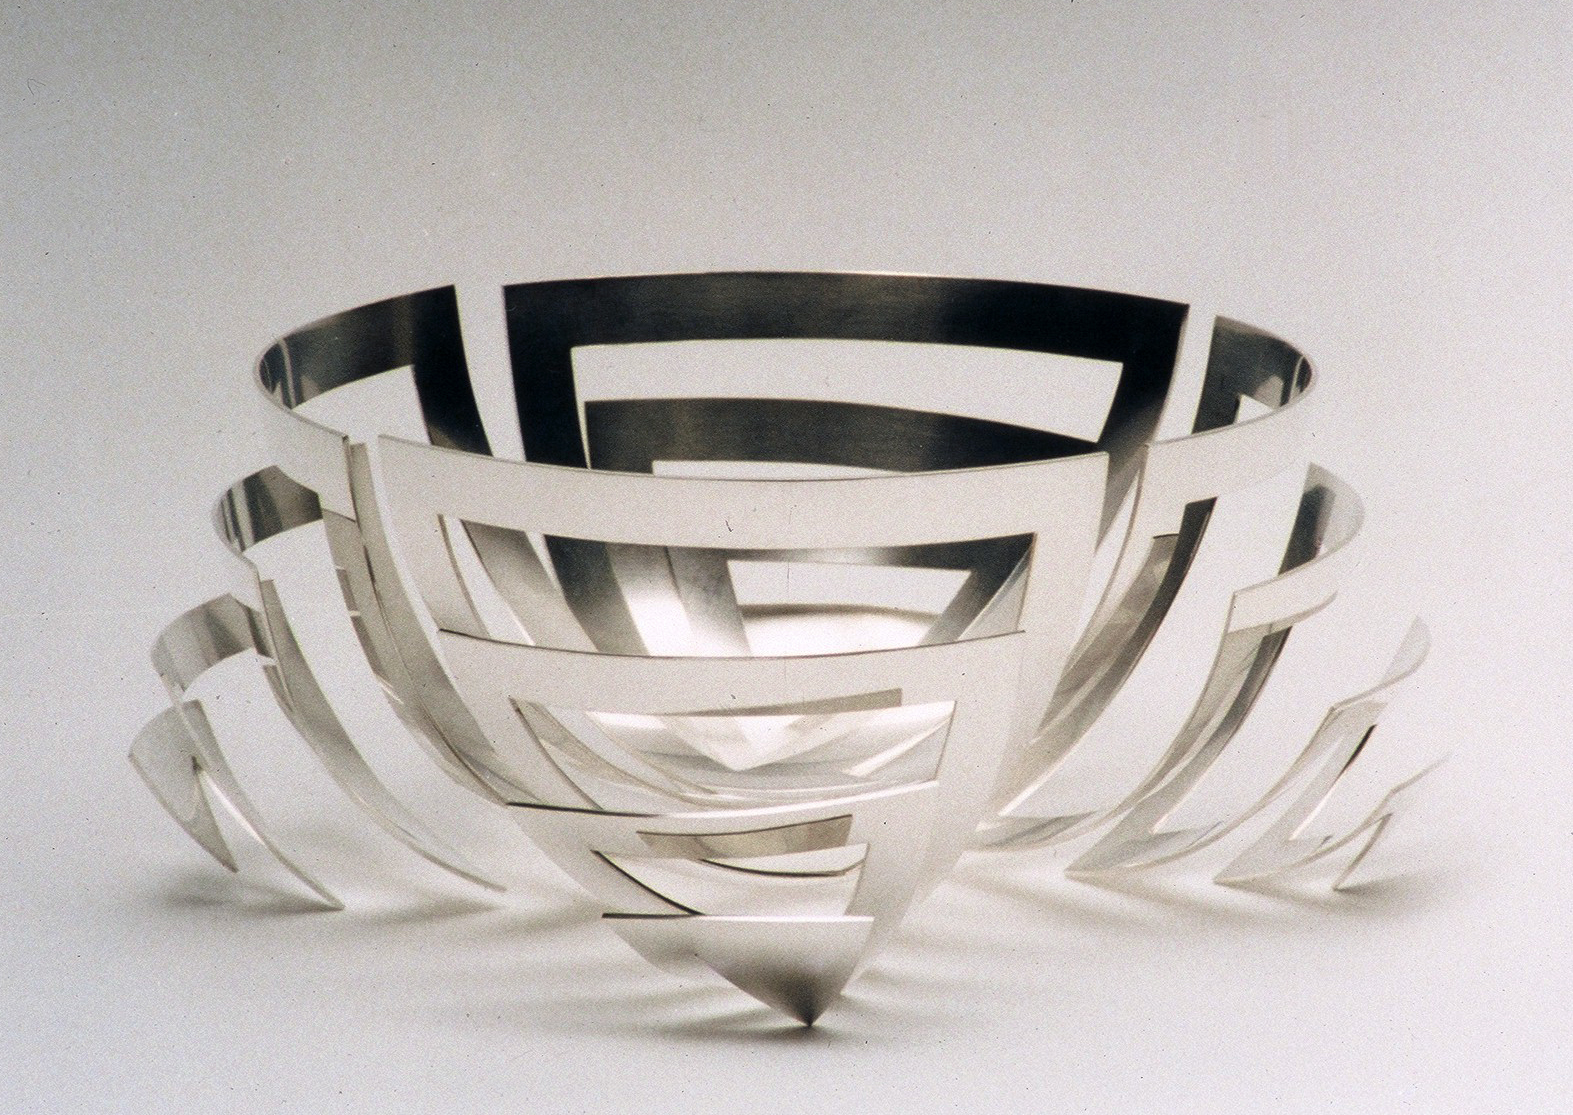 Large 'Nervous Bowl' in sterling silver